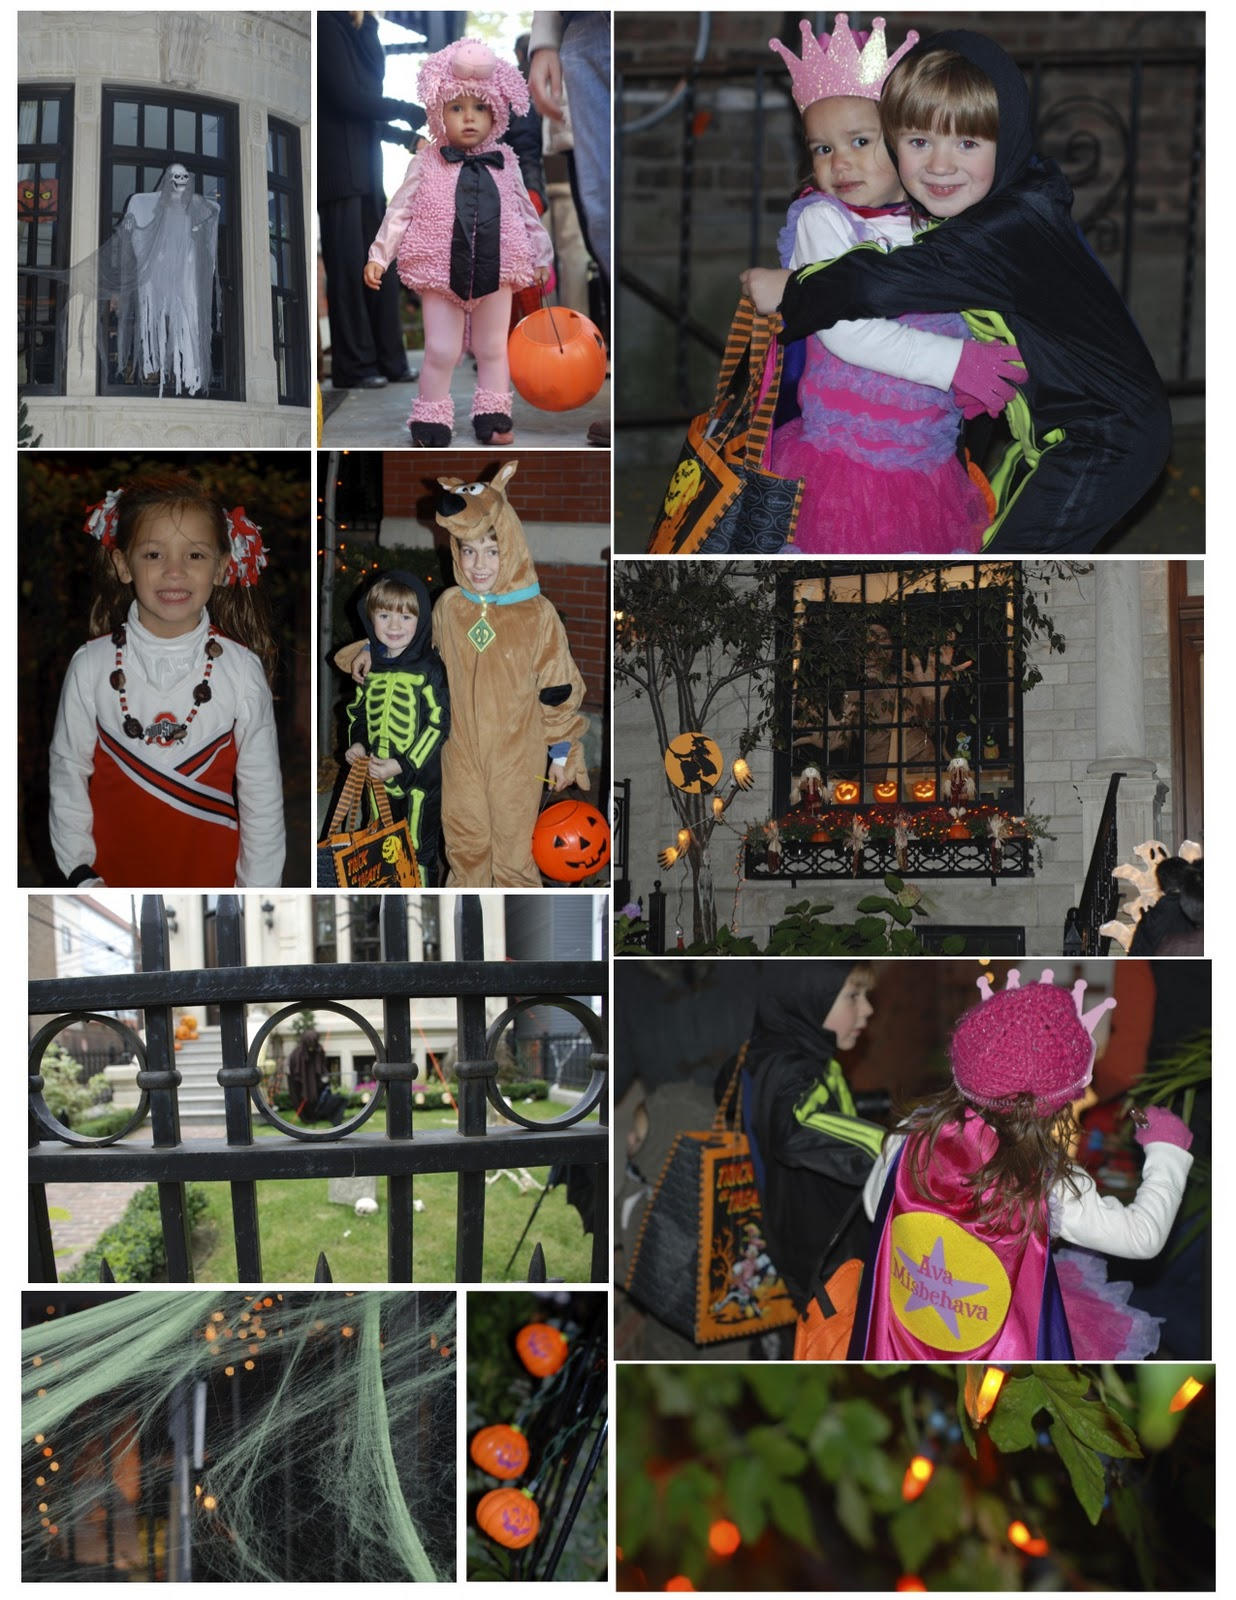 Halloween on MY street- or how to give away 1000 pieces of candy in 4 hours